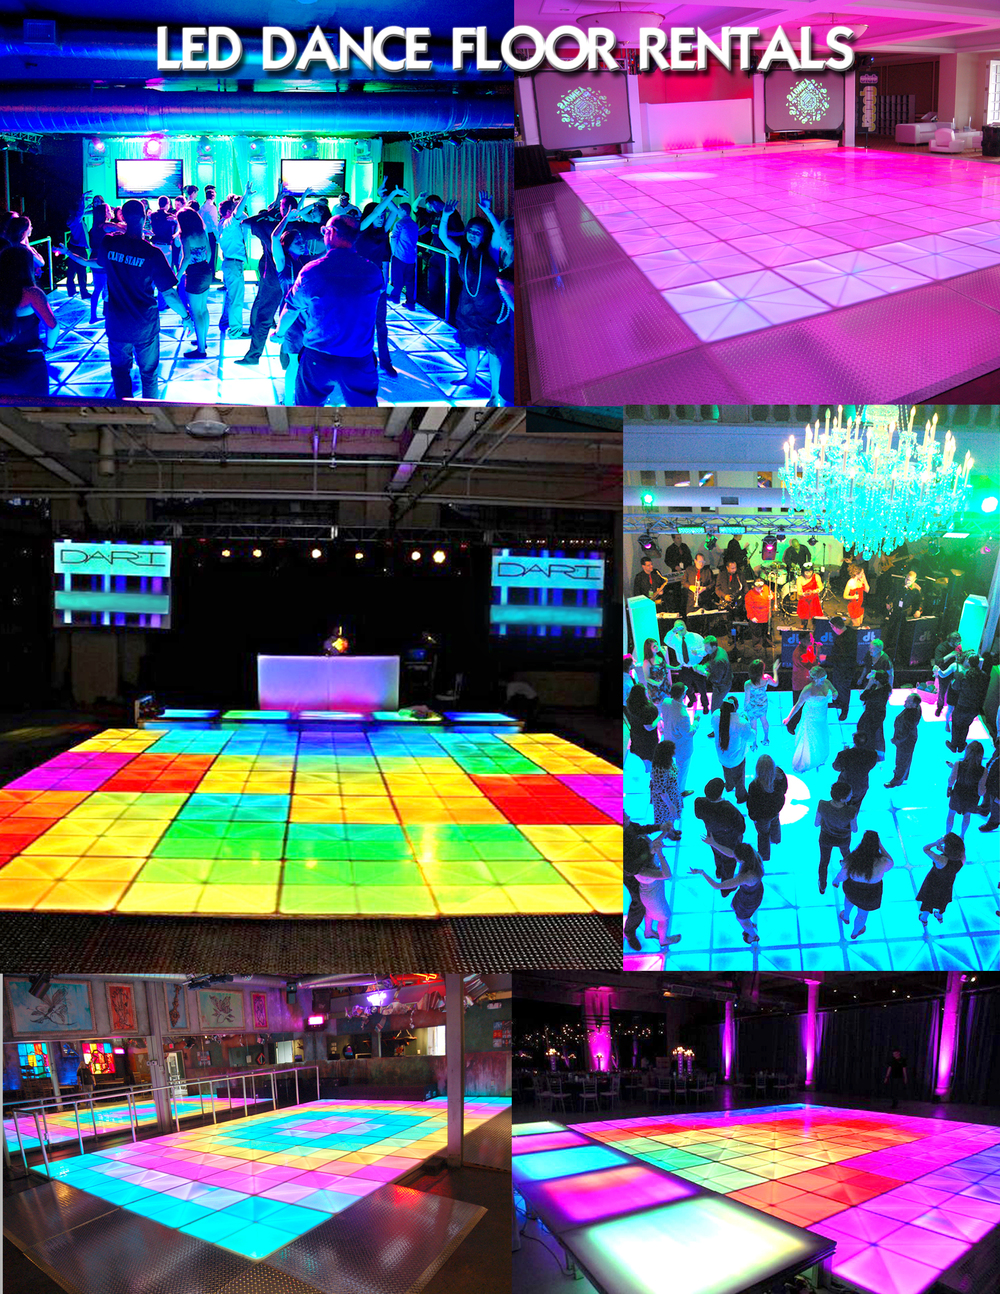 P7_LED Dance Floor Rentals.jpg